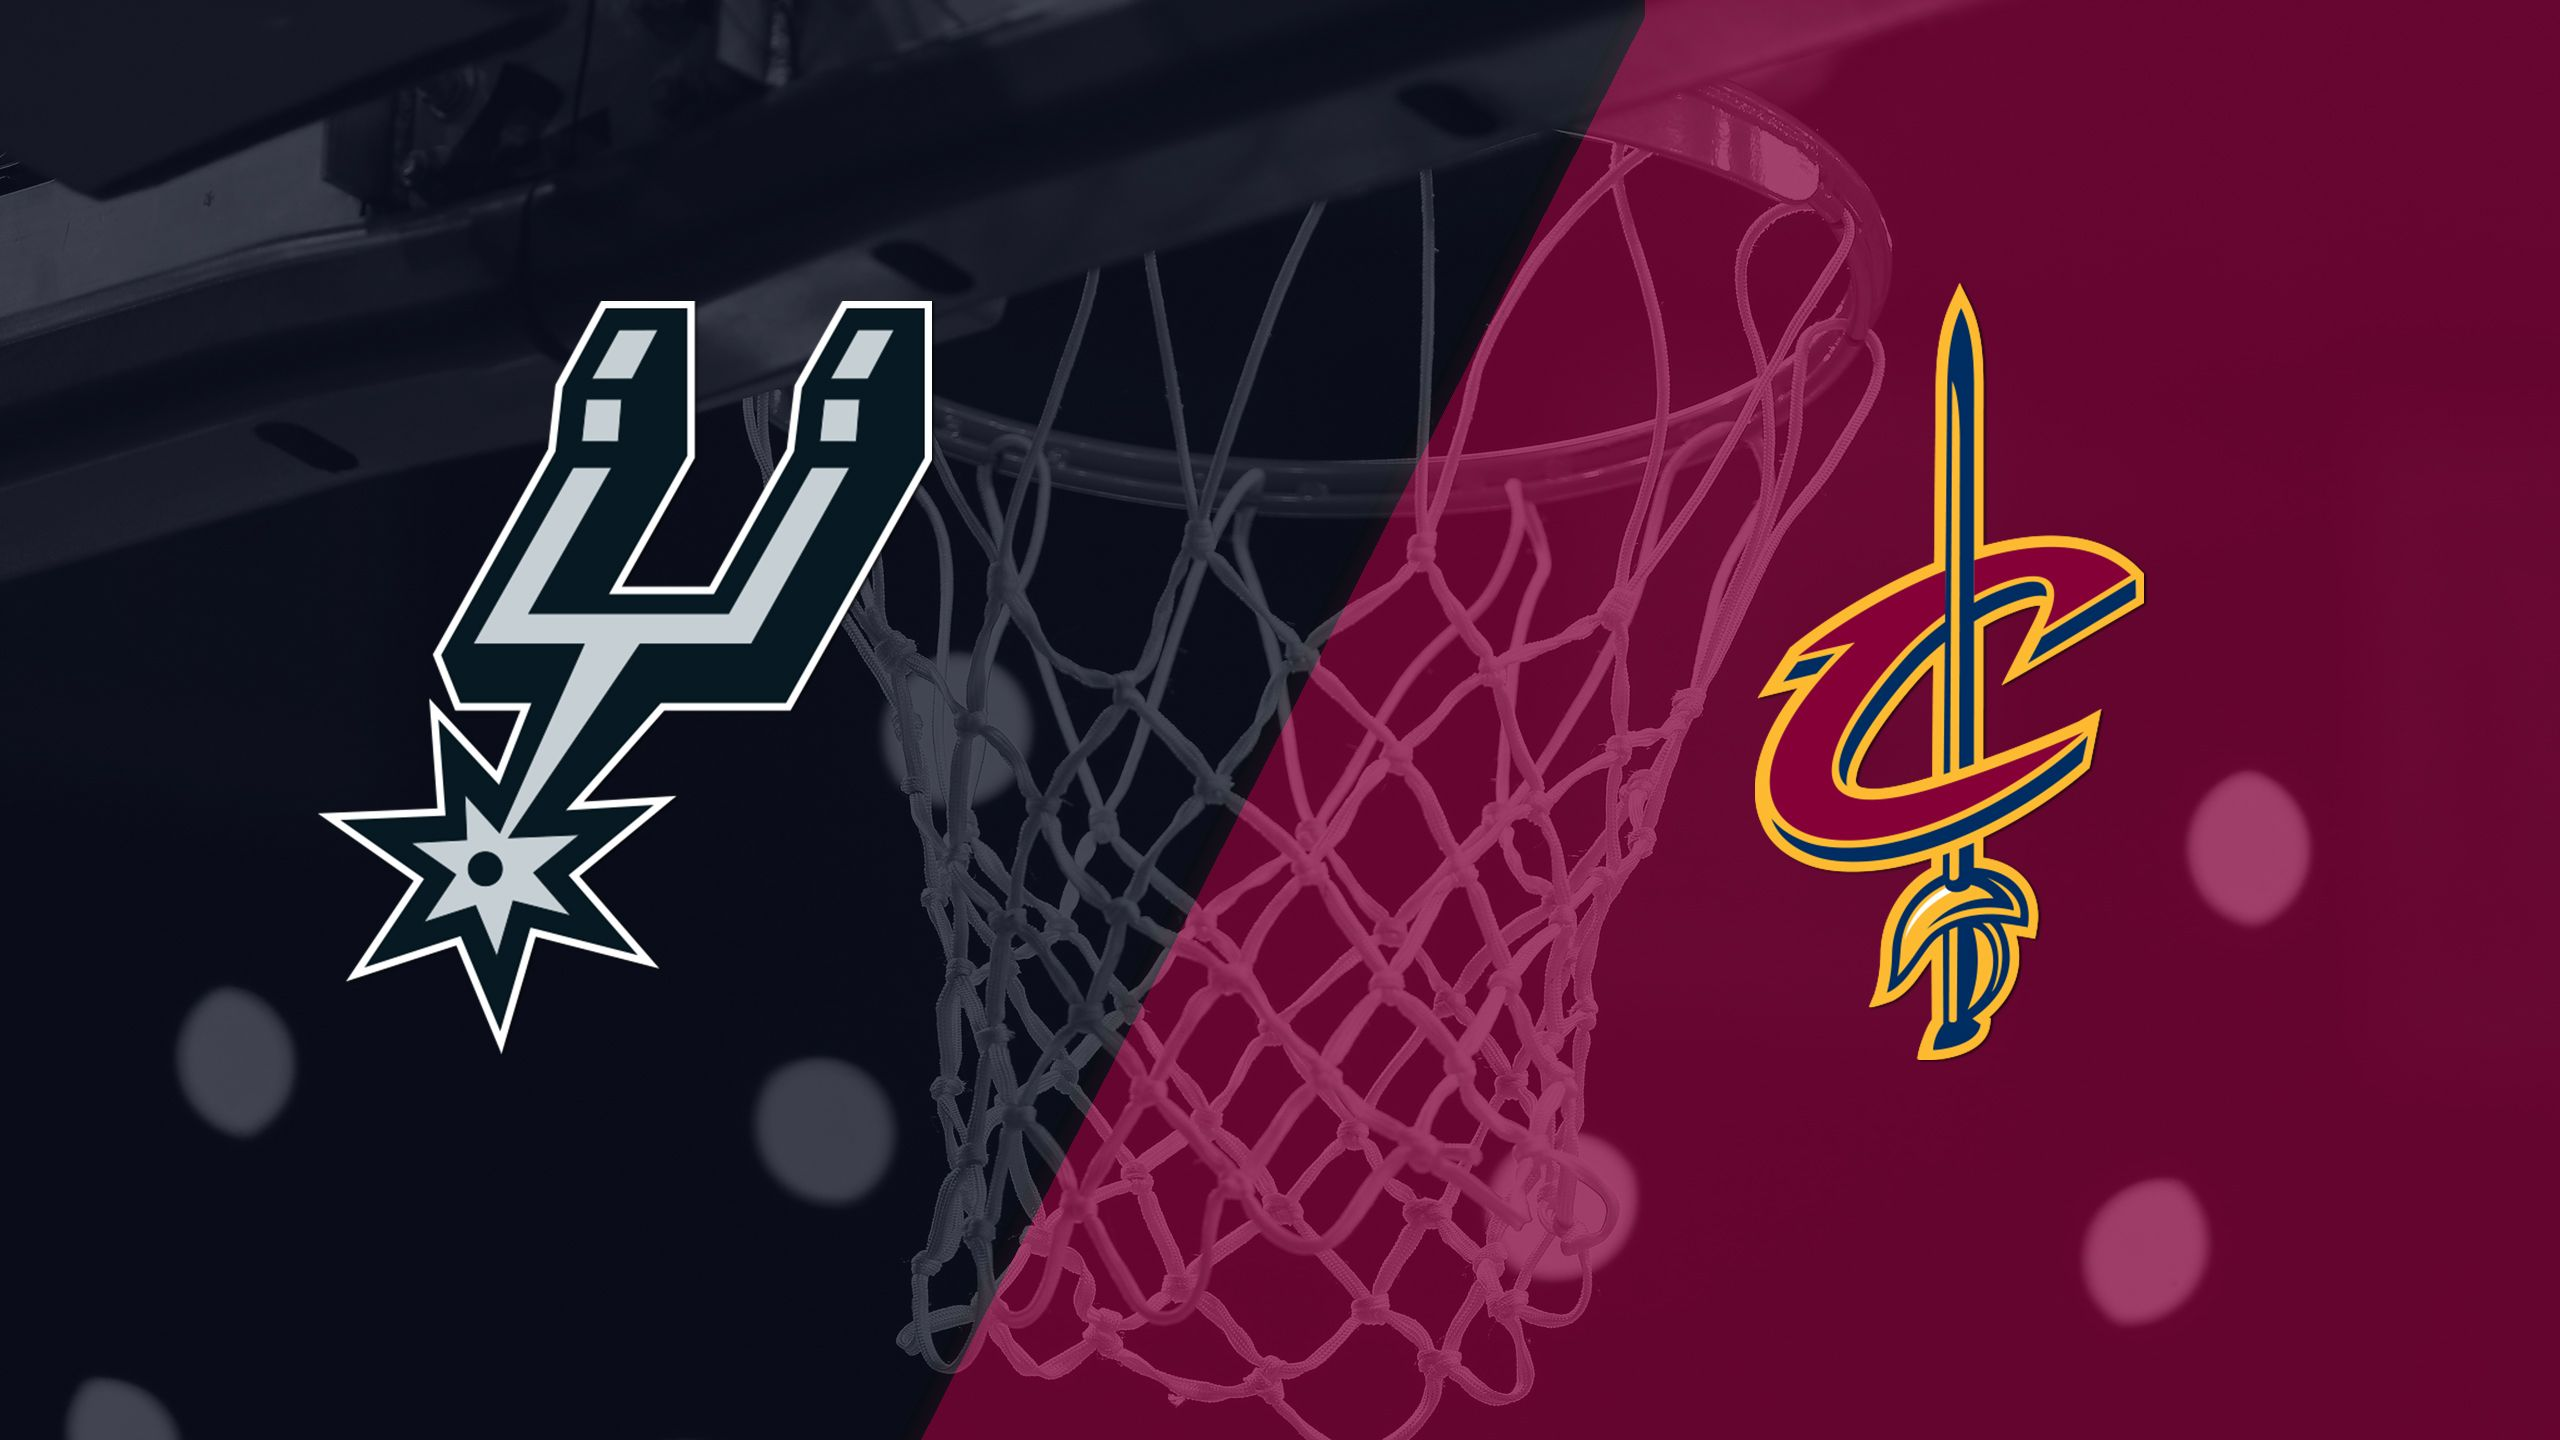 In Spanish - San Antonio Spurs vs. Cleveland Cavaliers